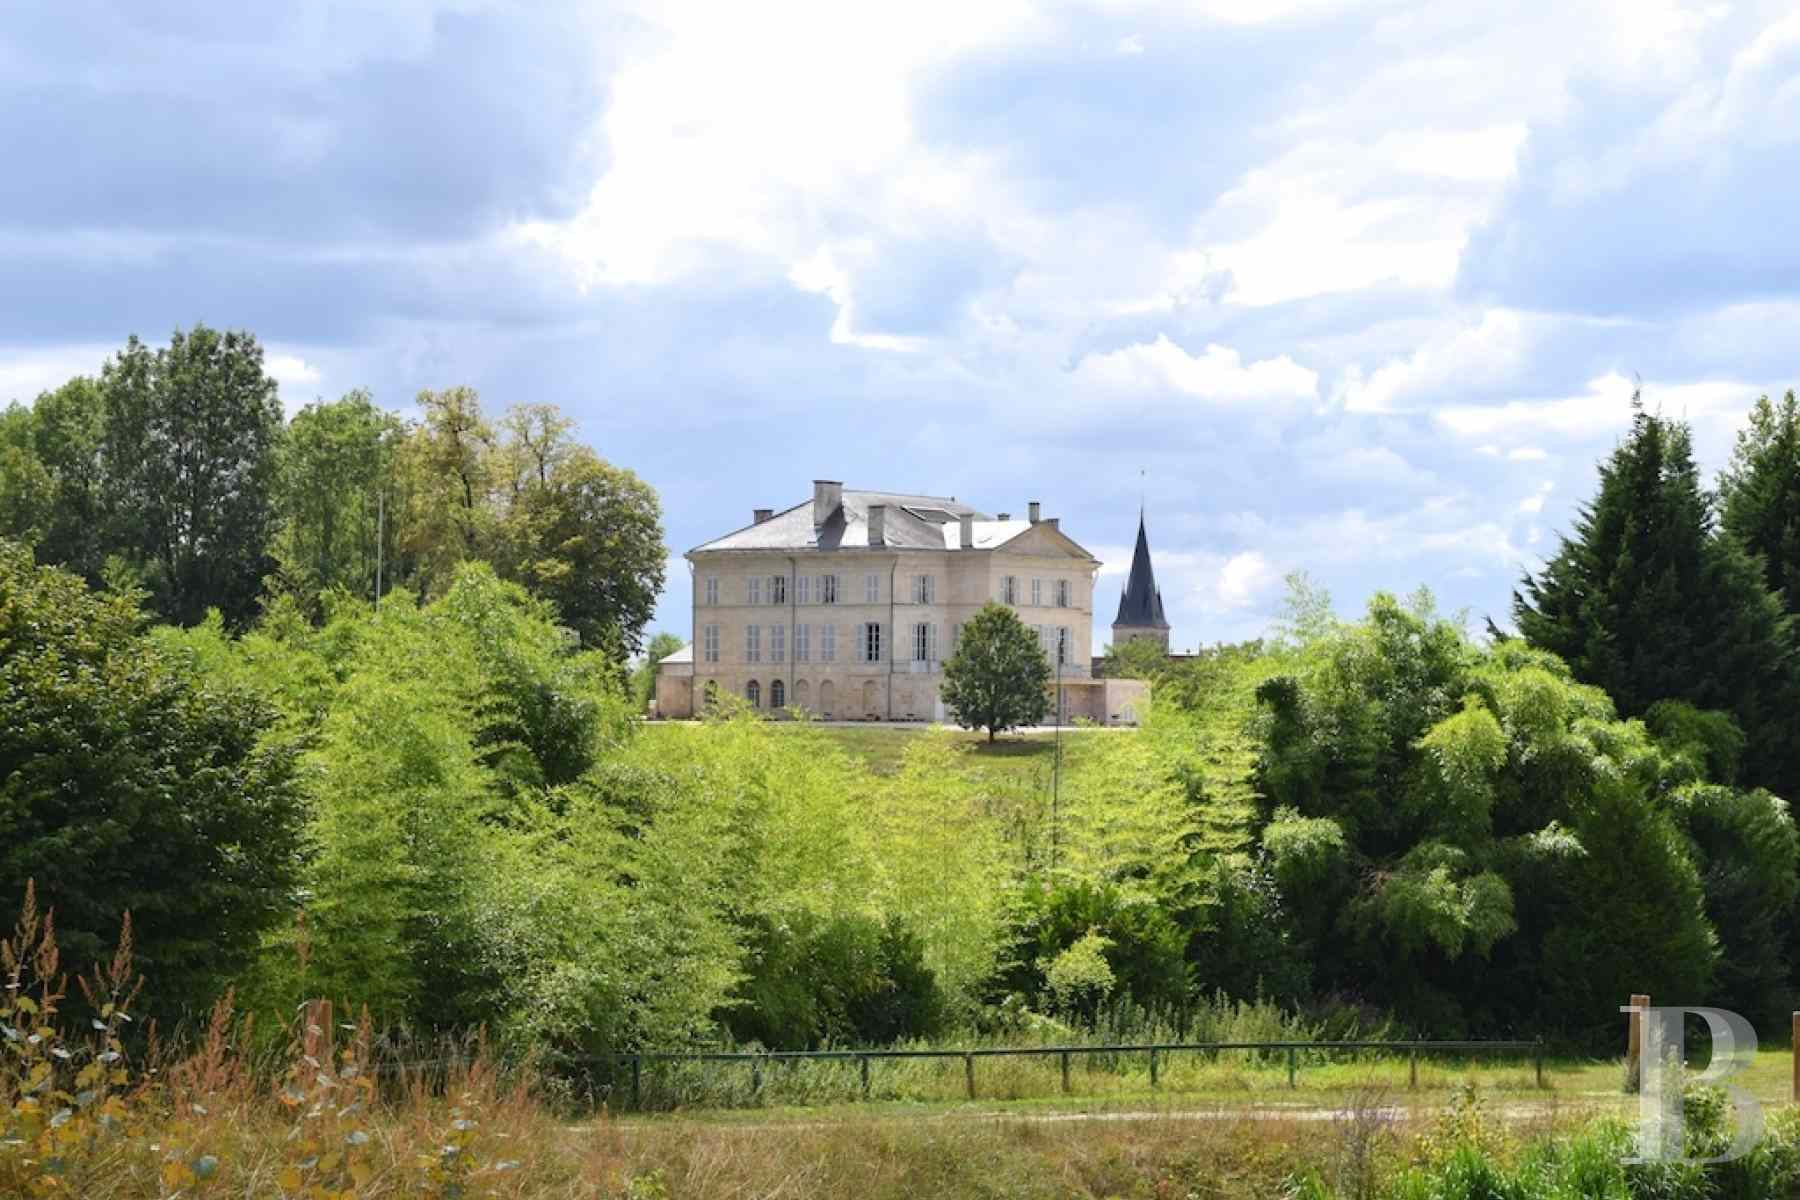 chateaux for sale France champagne ardennes neo palladian - 2 zoom